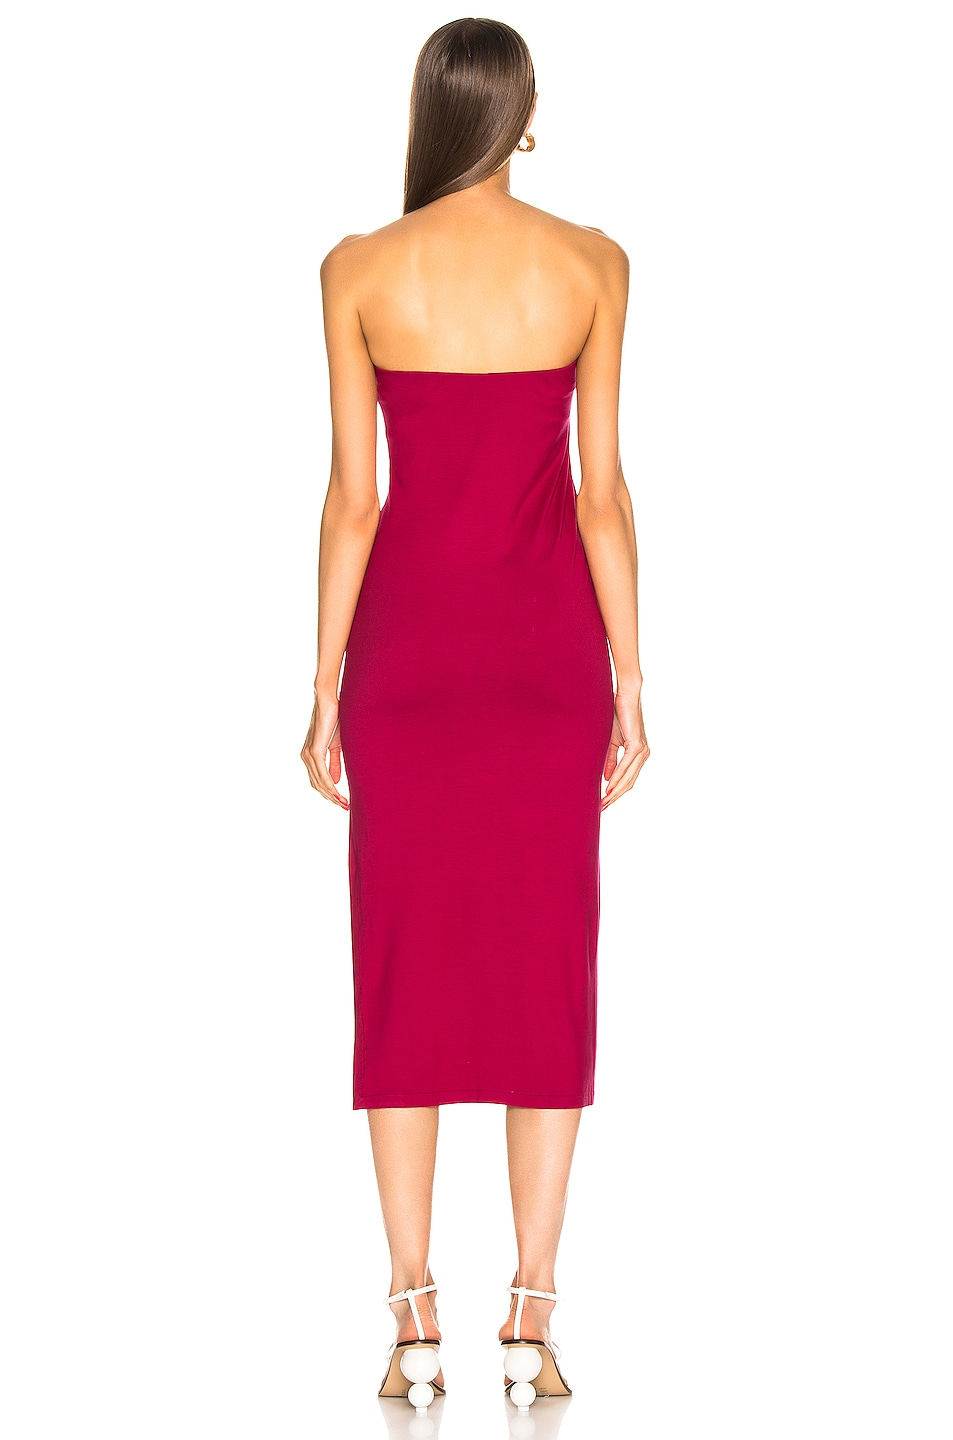 Image 4 of Enza Costa for FWRD Side Slit Dress in Fuchsia Red